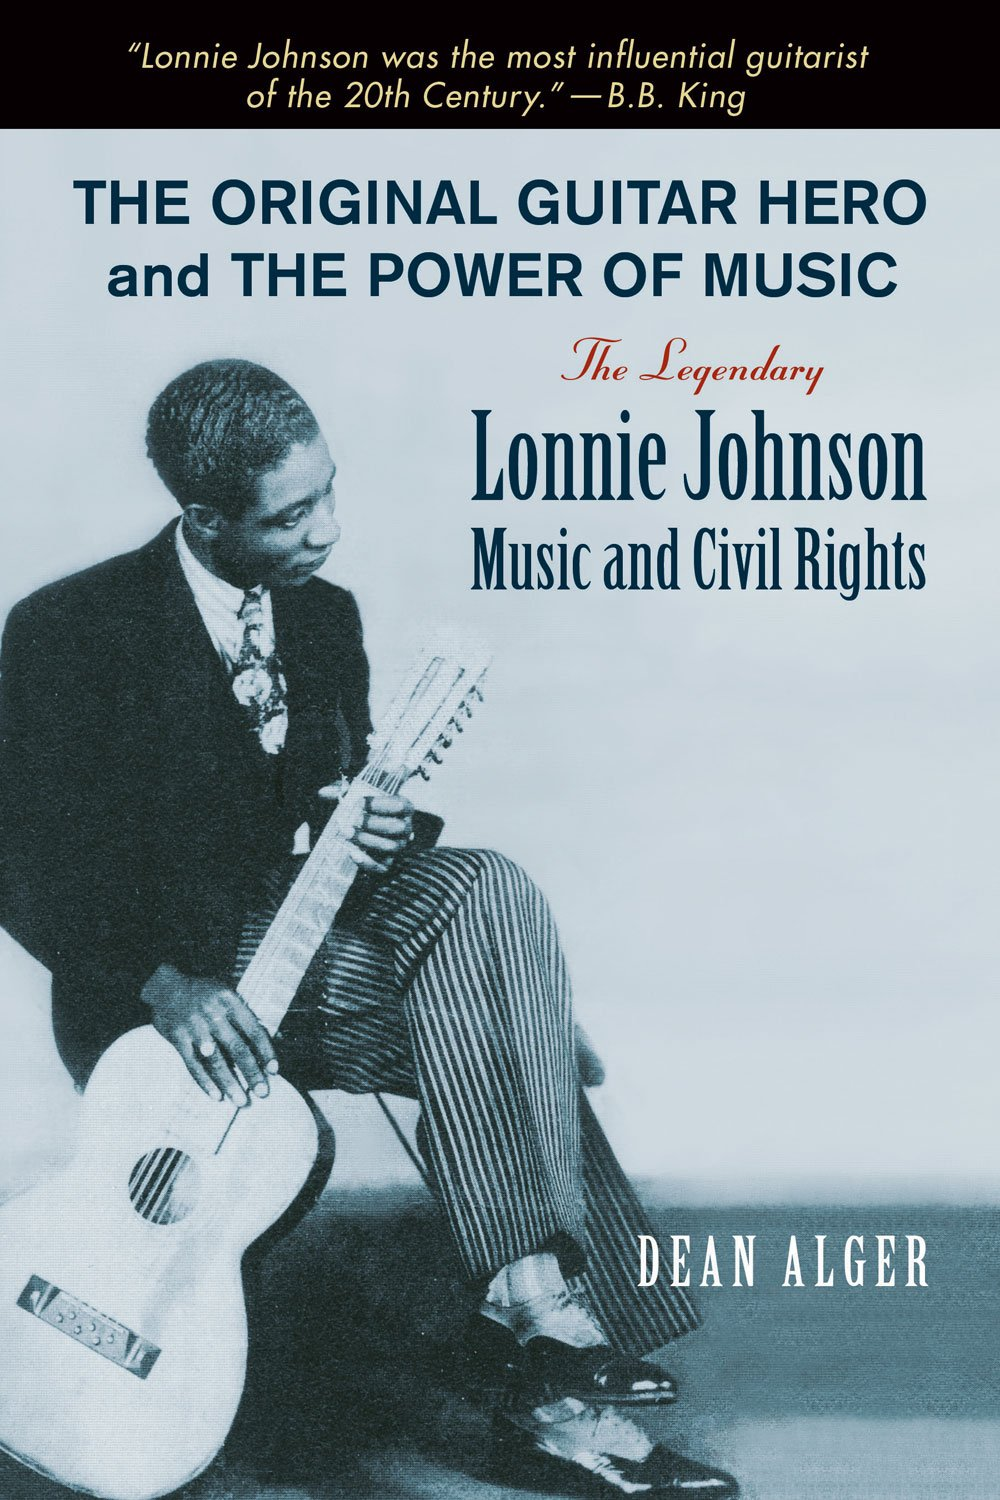 The Original Guitar Hero and the Power of Music: The Legendary Lonnie Johnson, Music, and Civil Rights (North Texas Lives of Musician Series)